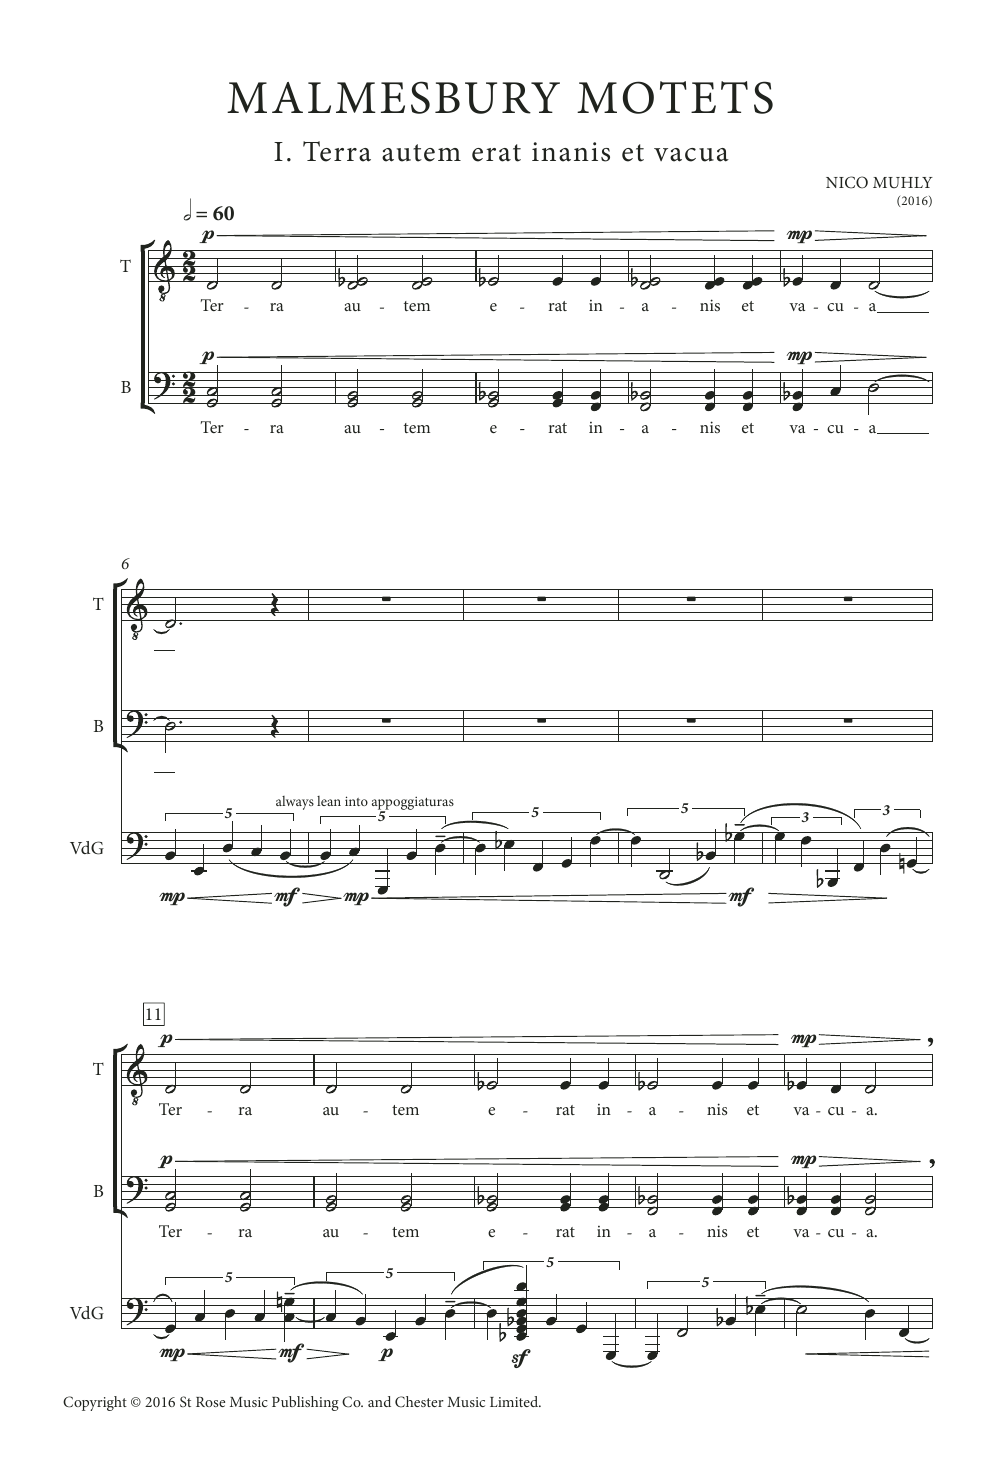 Malmesbury Motets Sheet Music